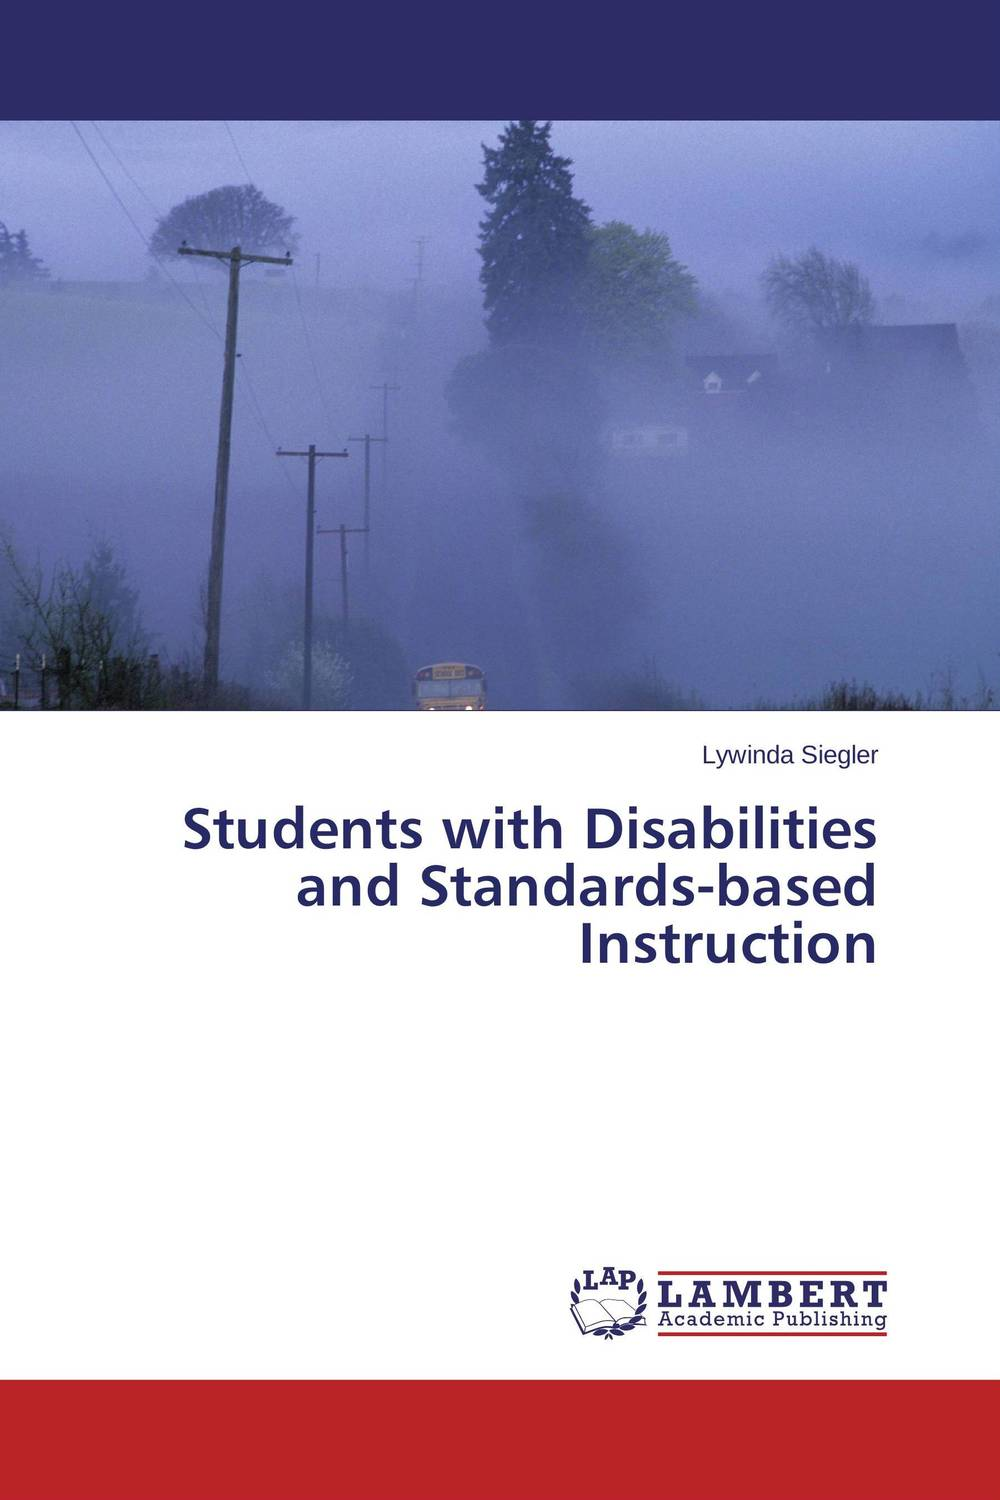 Students with Disabilities and Standards-based Instruction